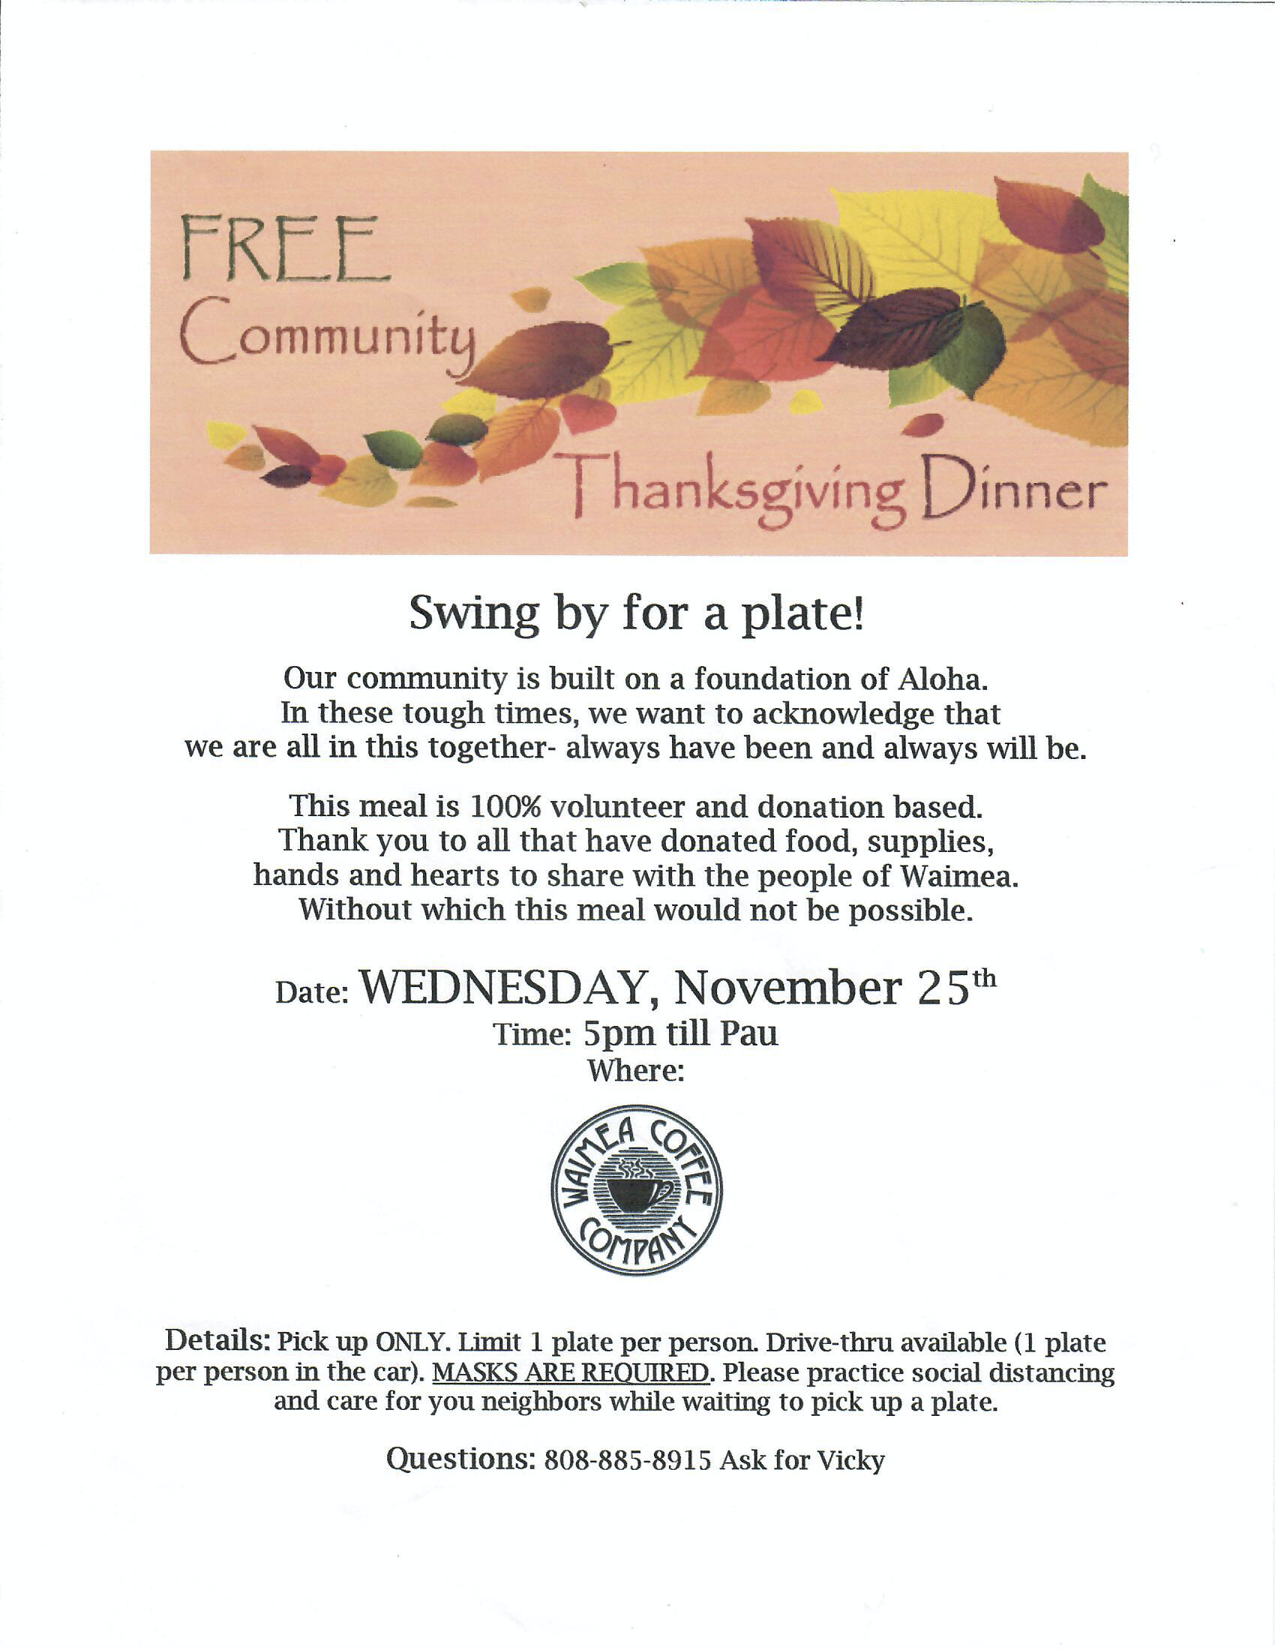 Free Community Thanksgiving Dinner at Waimea Coffee Company Wednesday November 25 from 5pm until done